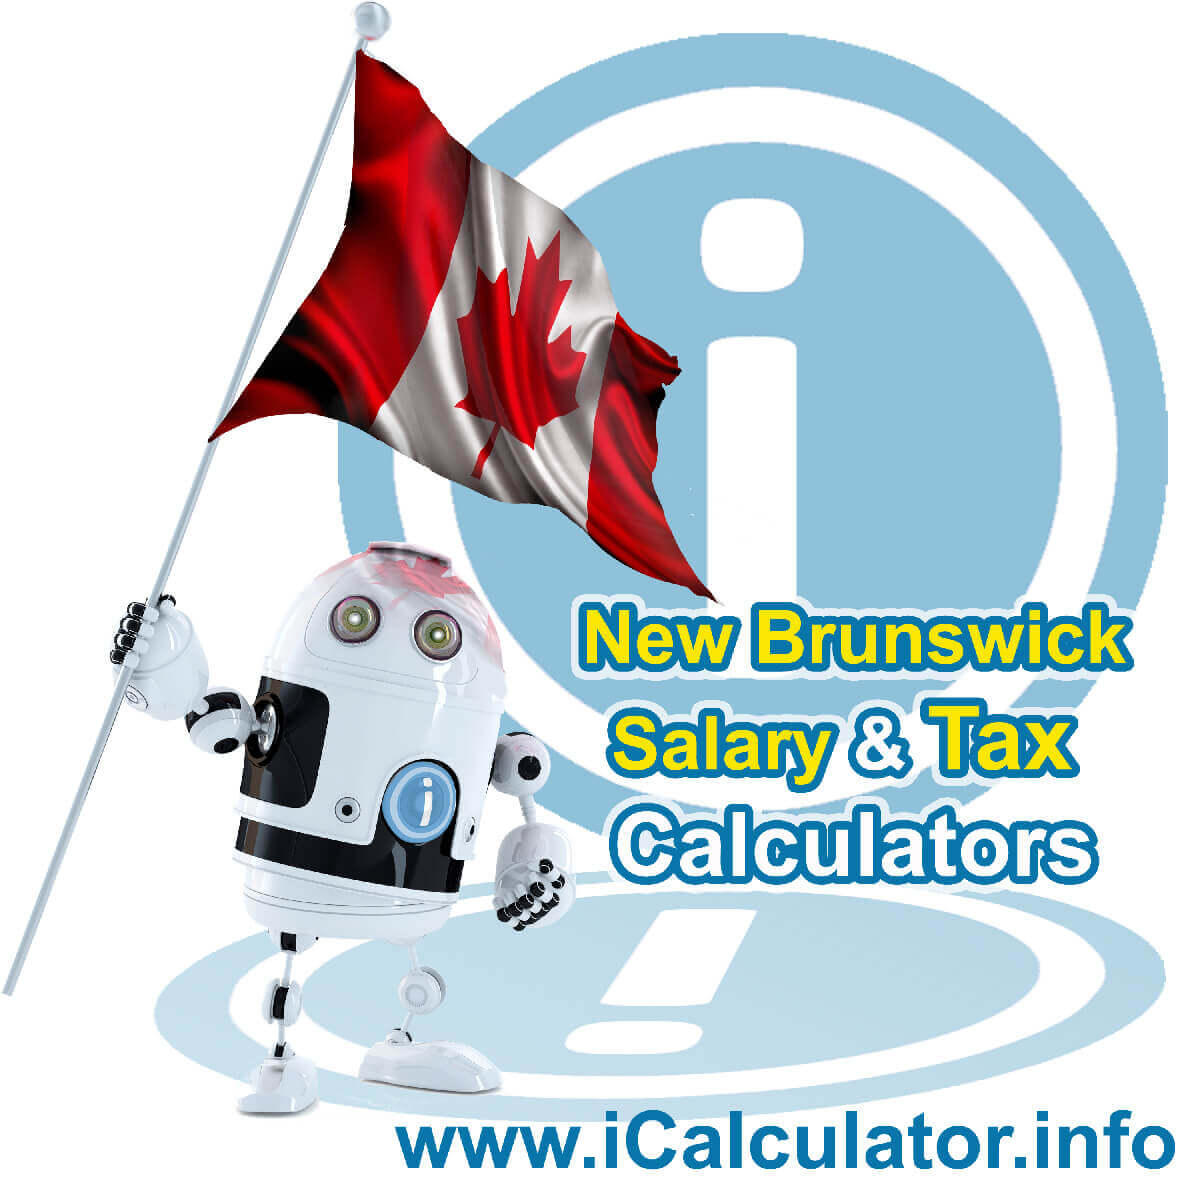 New Brunswick 2020 Salary Comparison Calculator. This image shows the New Brunswick flag and information relating to the tax formula used in the New Brunswick 2020 Salary Comparison Calculator